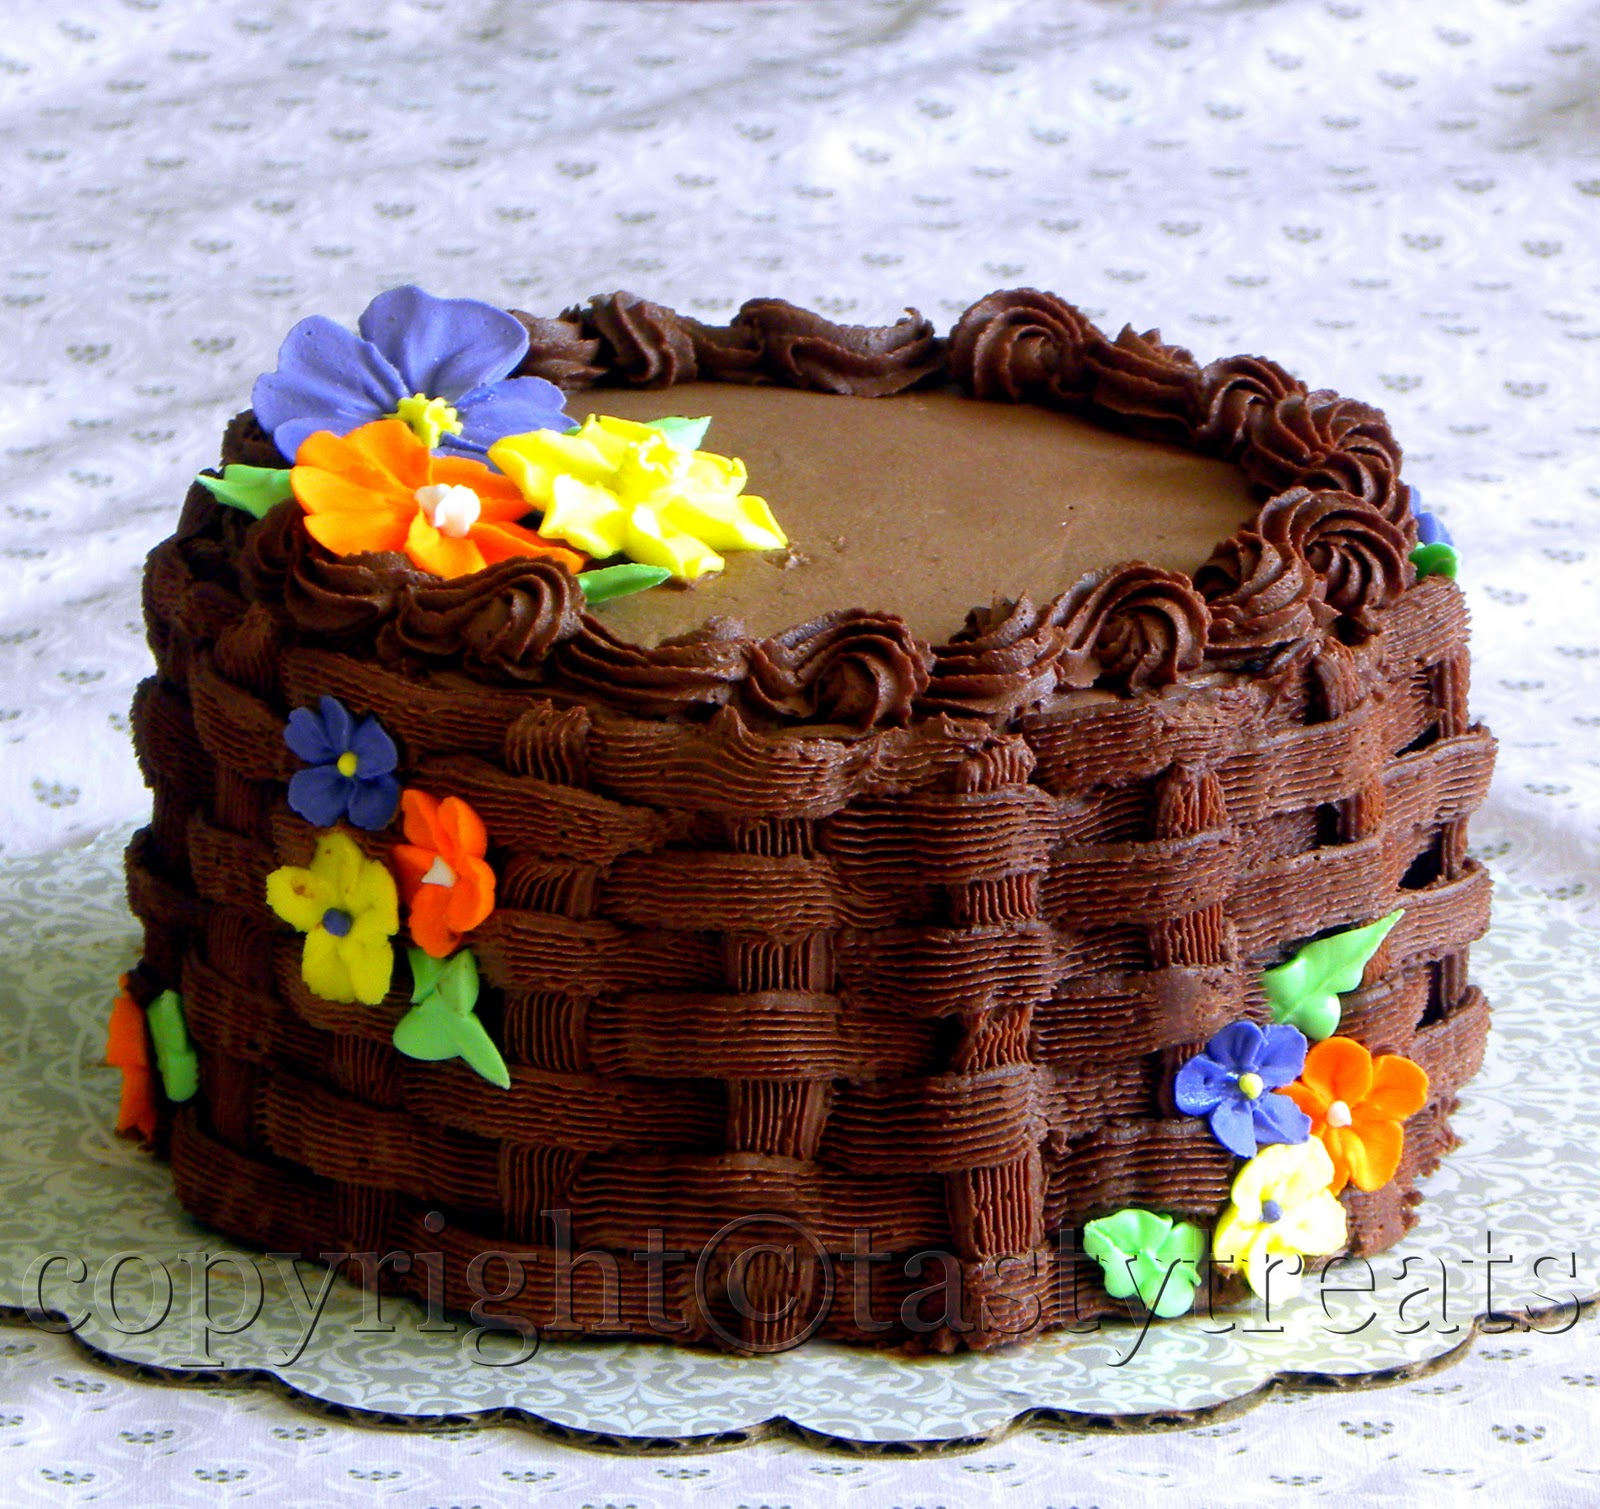 Tasty Treats Eggless Chocolate Cake With Chocolate Buttercream